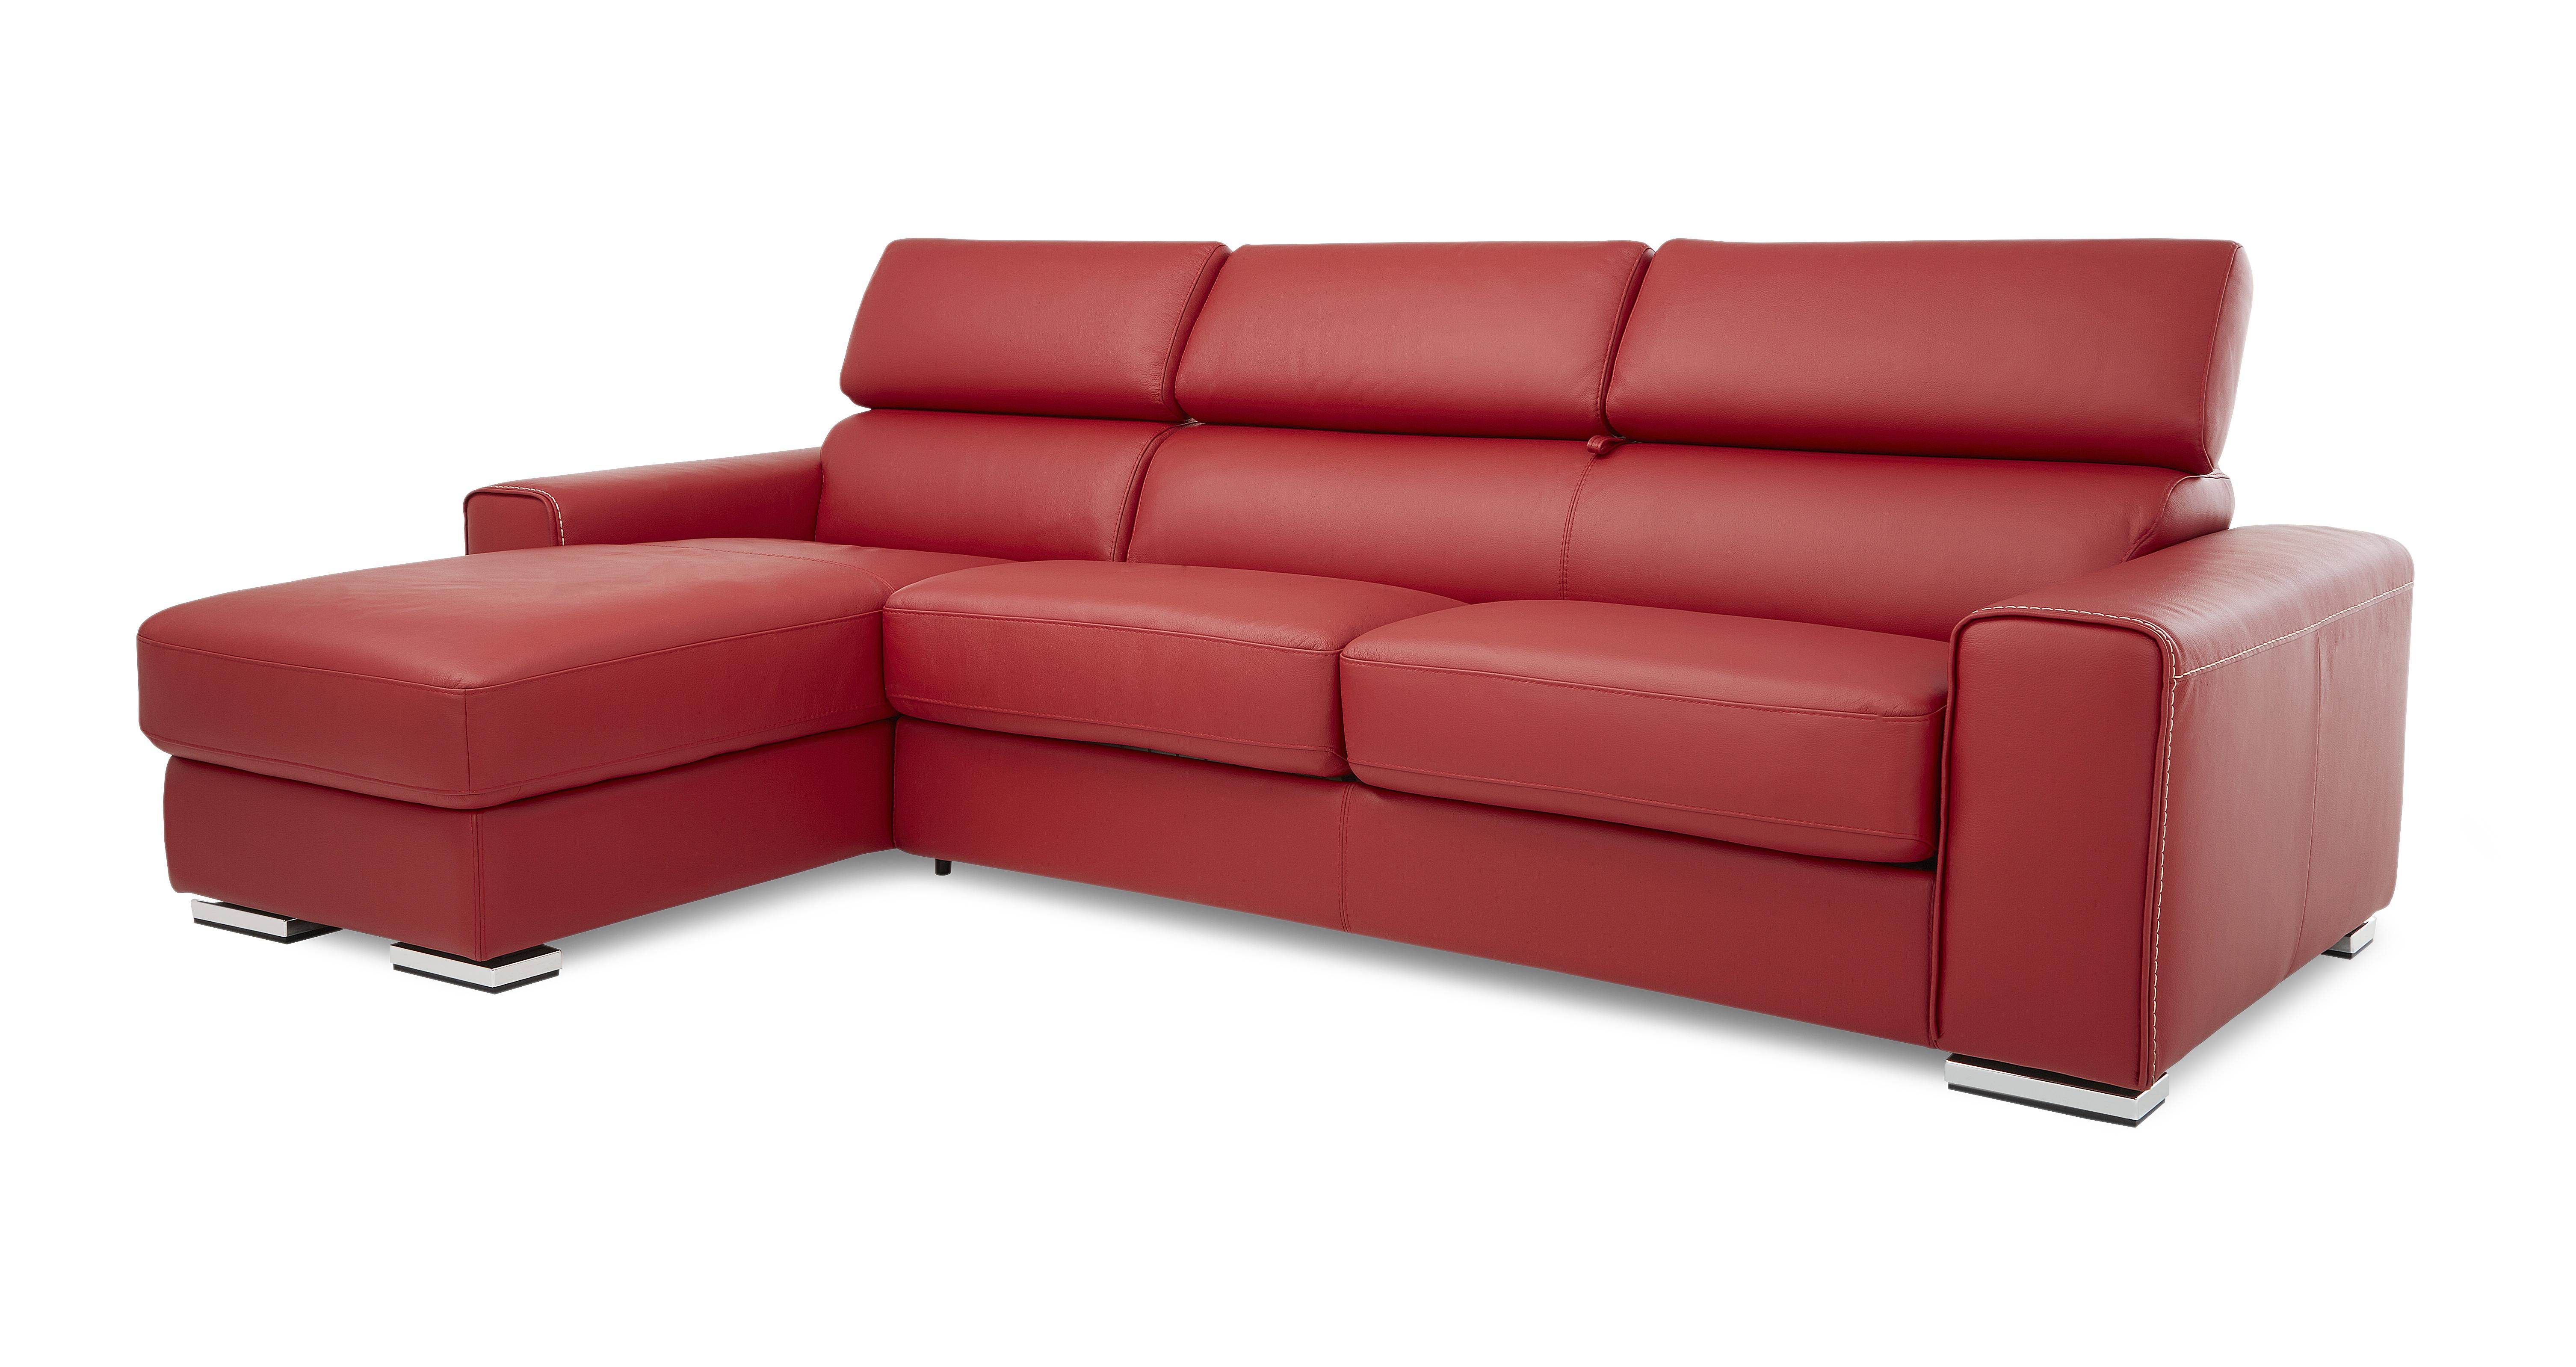 Sofas On Finance No Deposit Uk picture on left hand facing 3 seater storage chaise sofabed sierra contrast with Sofas On Finance No Deposit Uk, sofa 7b3ab9e2d4fa8d1d199173a29383b61e